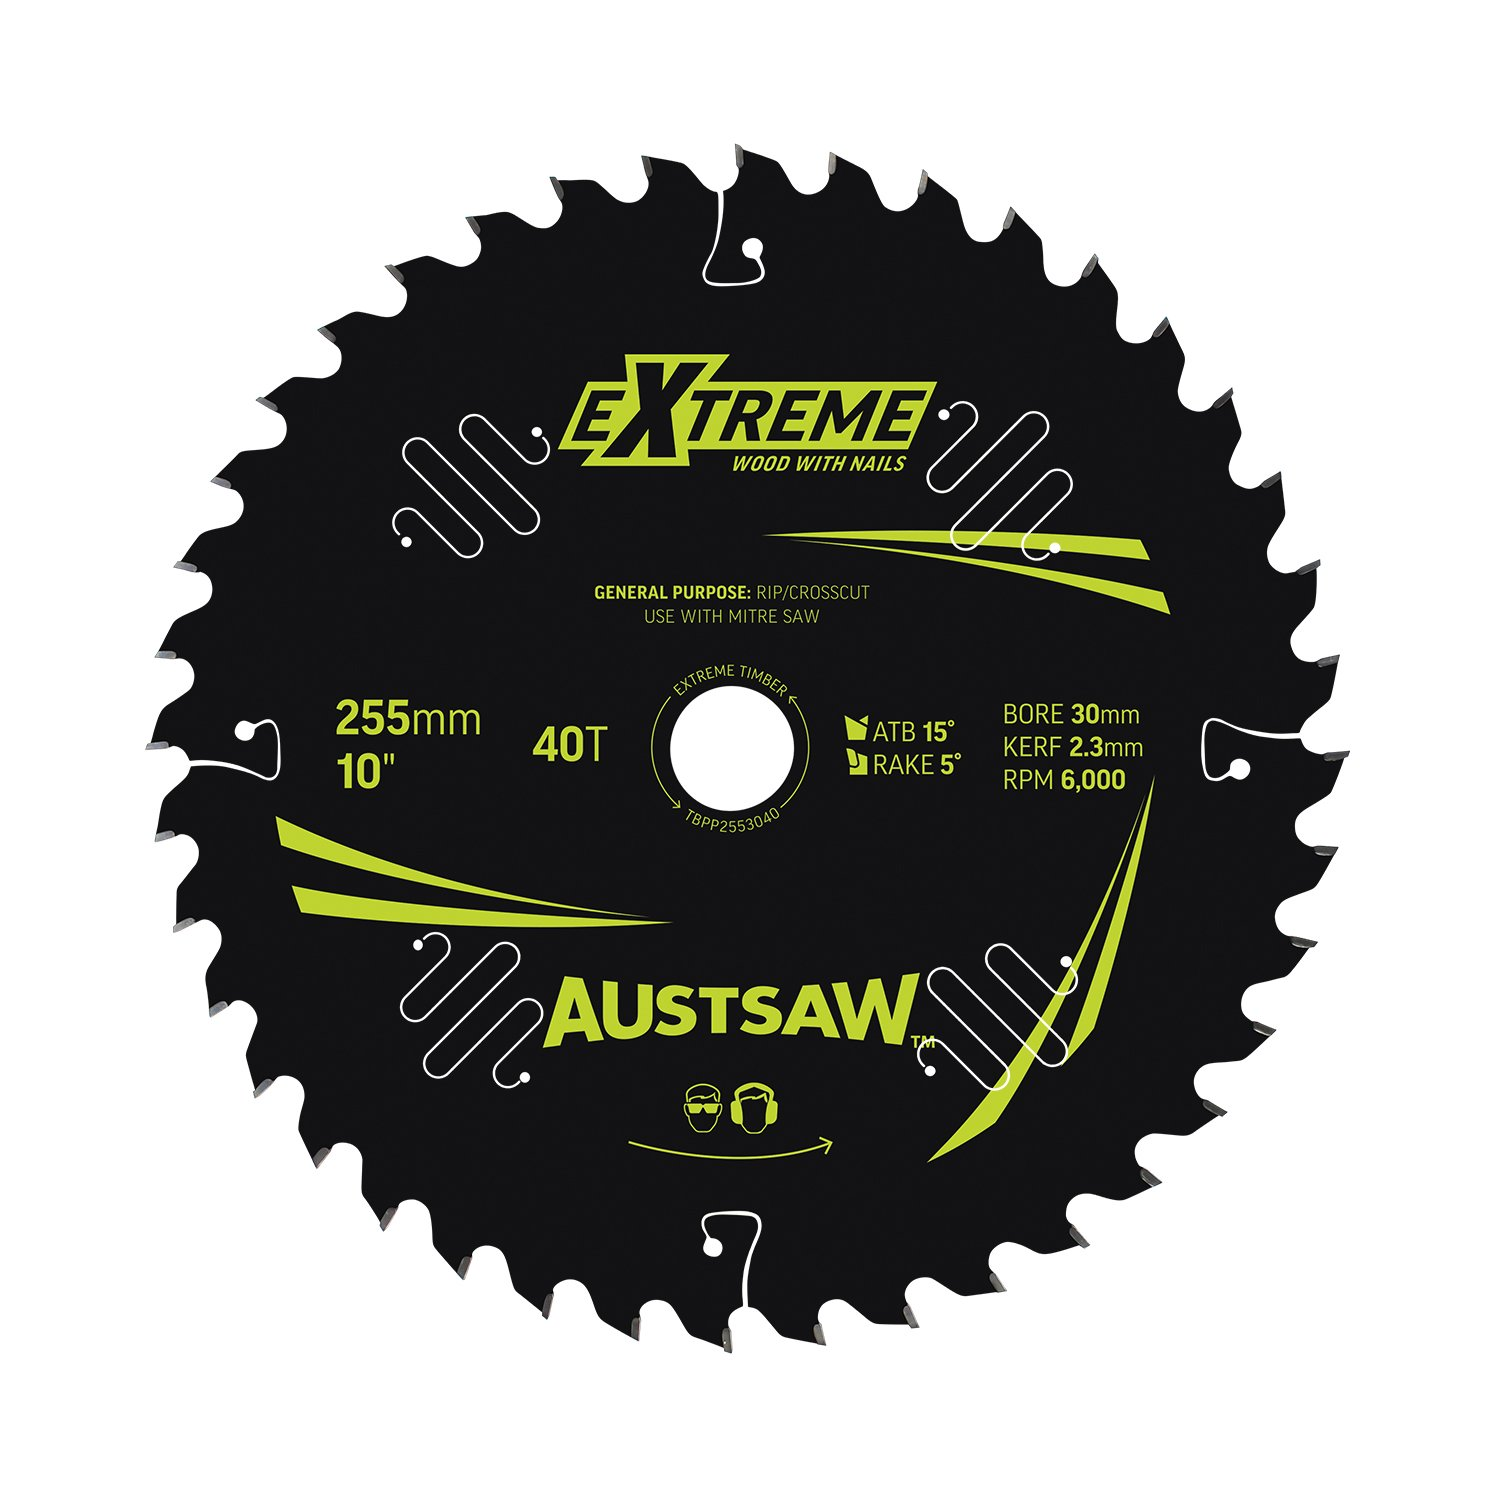 Austsaw Extreme: Wood with Nails Blade 255mm x 30 Bore x 40 T Thin Kerf